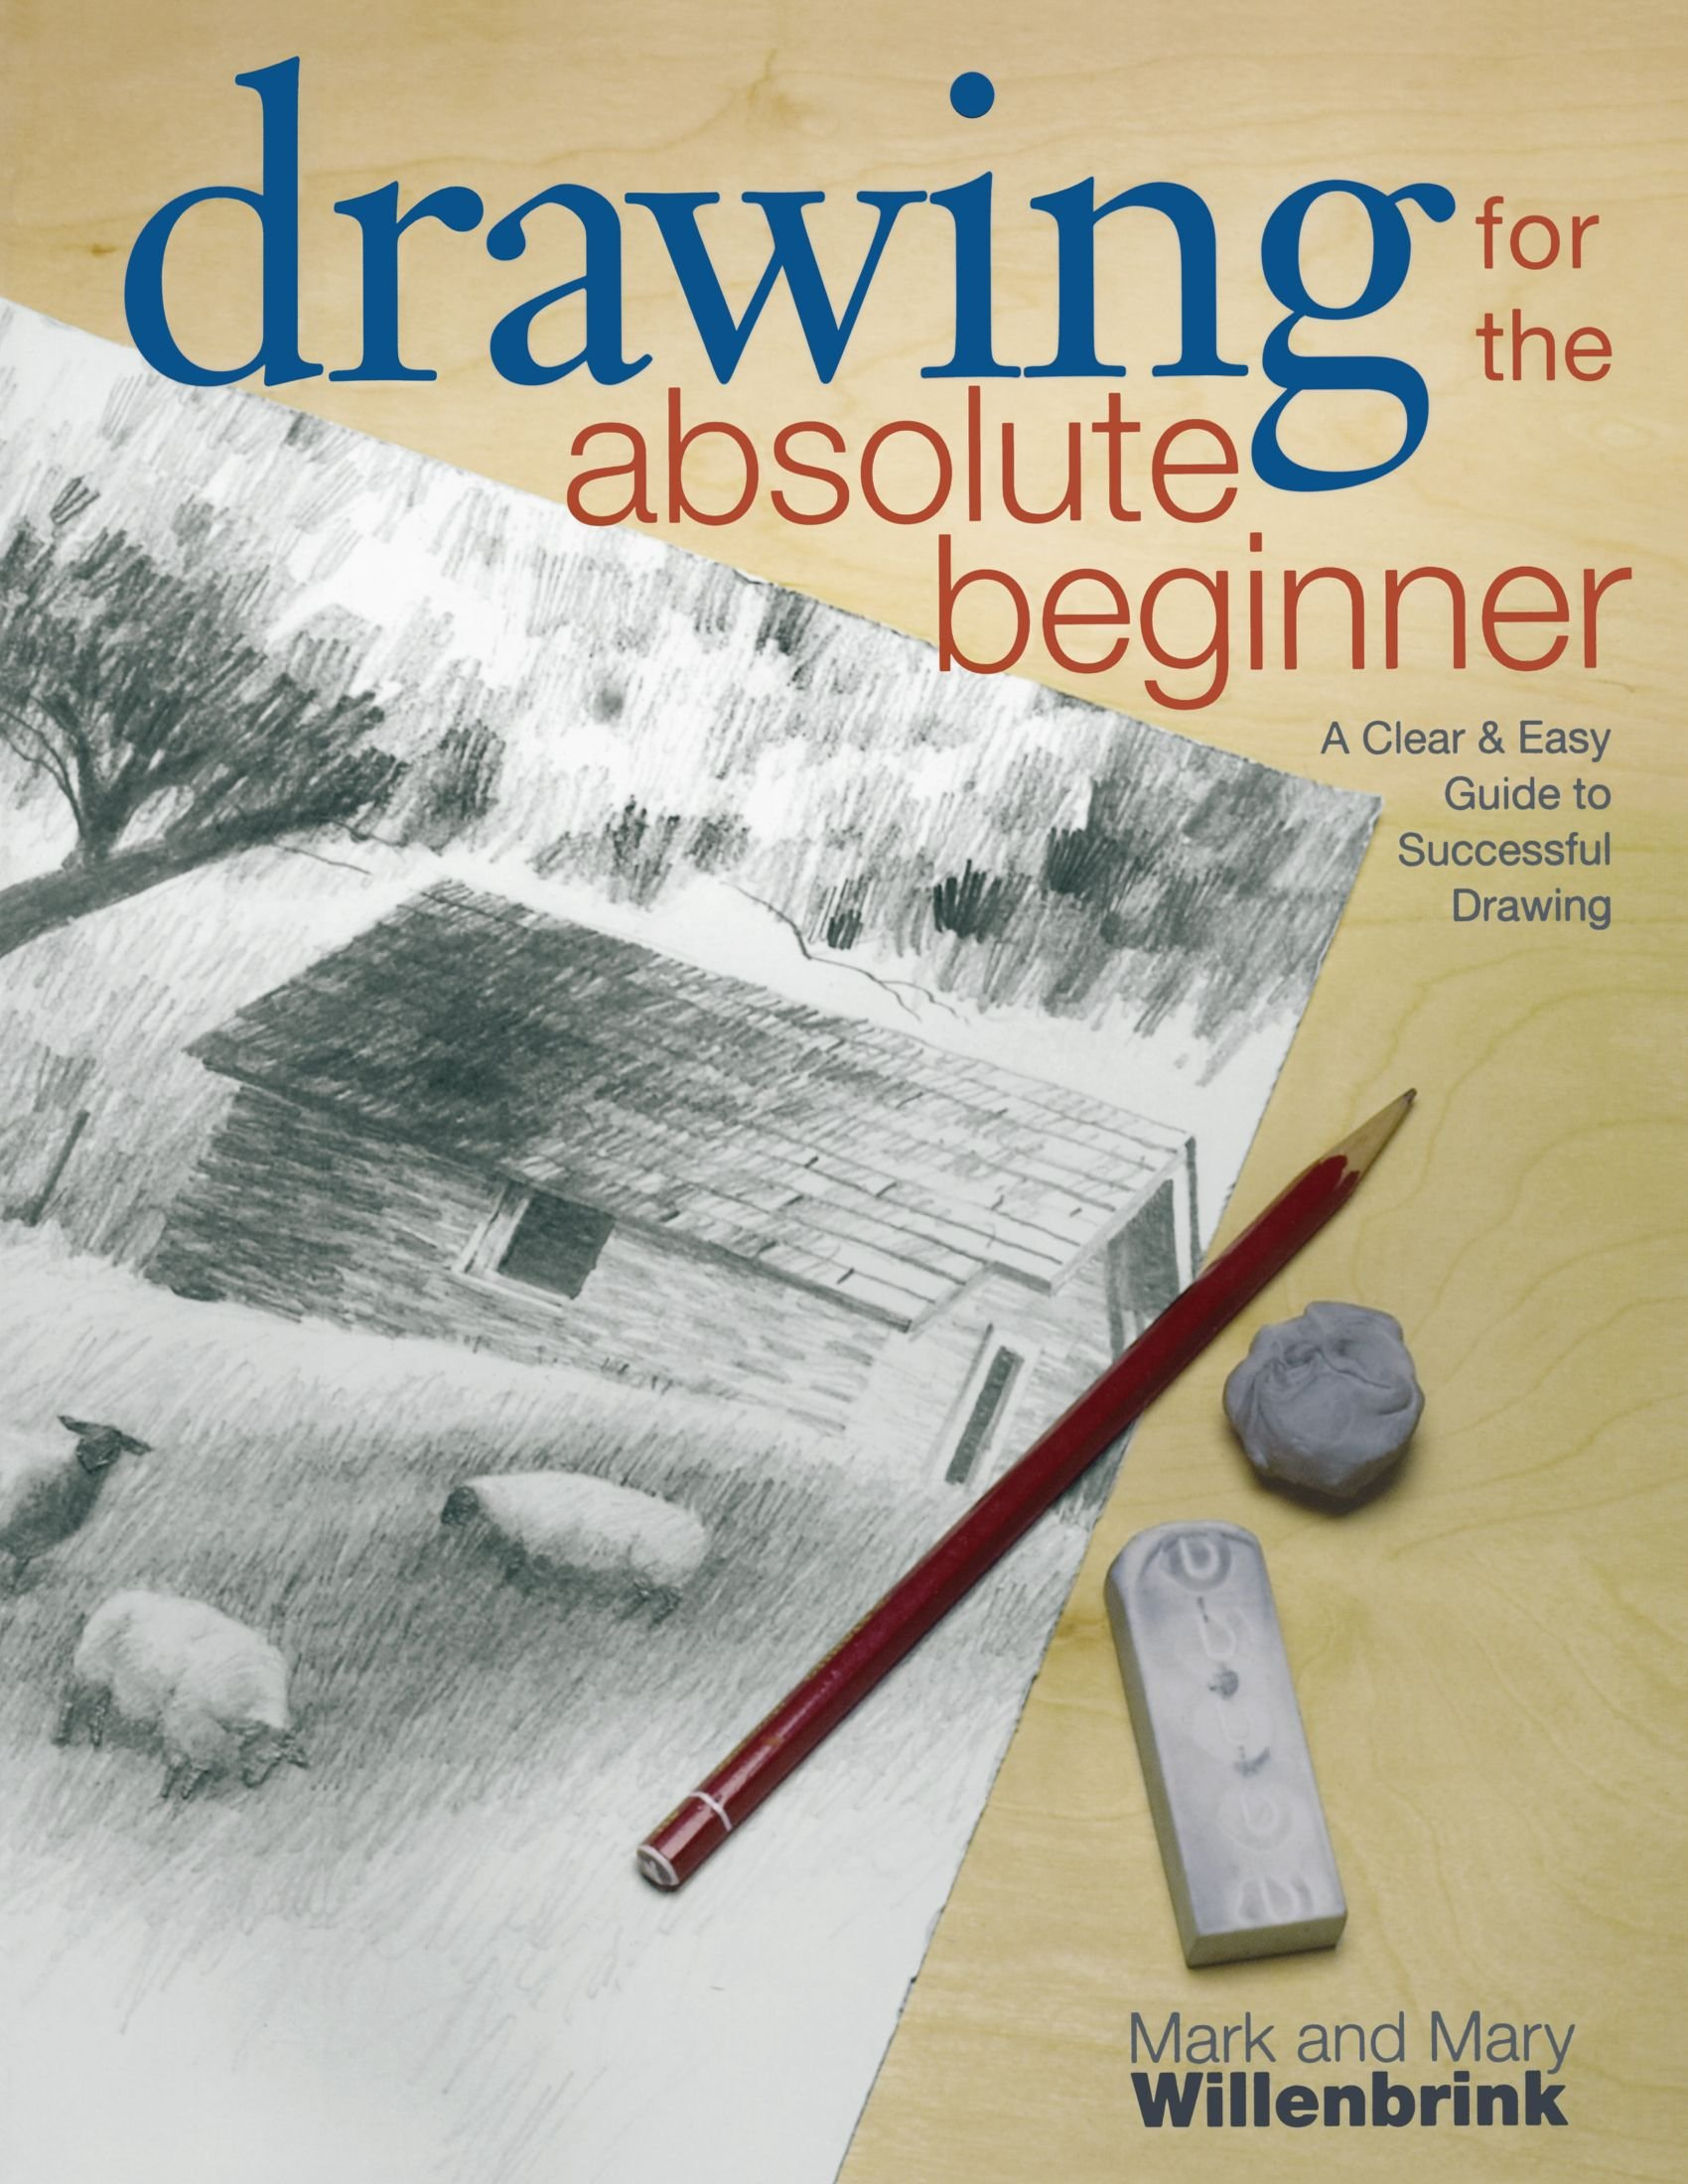 Drawing for the Absolute Beginner: A Clear & Easy Guide to Successful Drawing (Inglese) Copertina flessibile – 26 gen 2007 Mark Willenbrink Mary Willenbrink North Light Books 1581807899